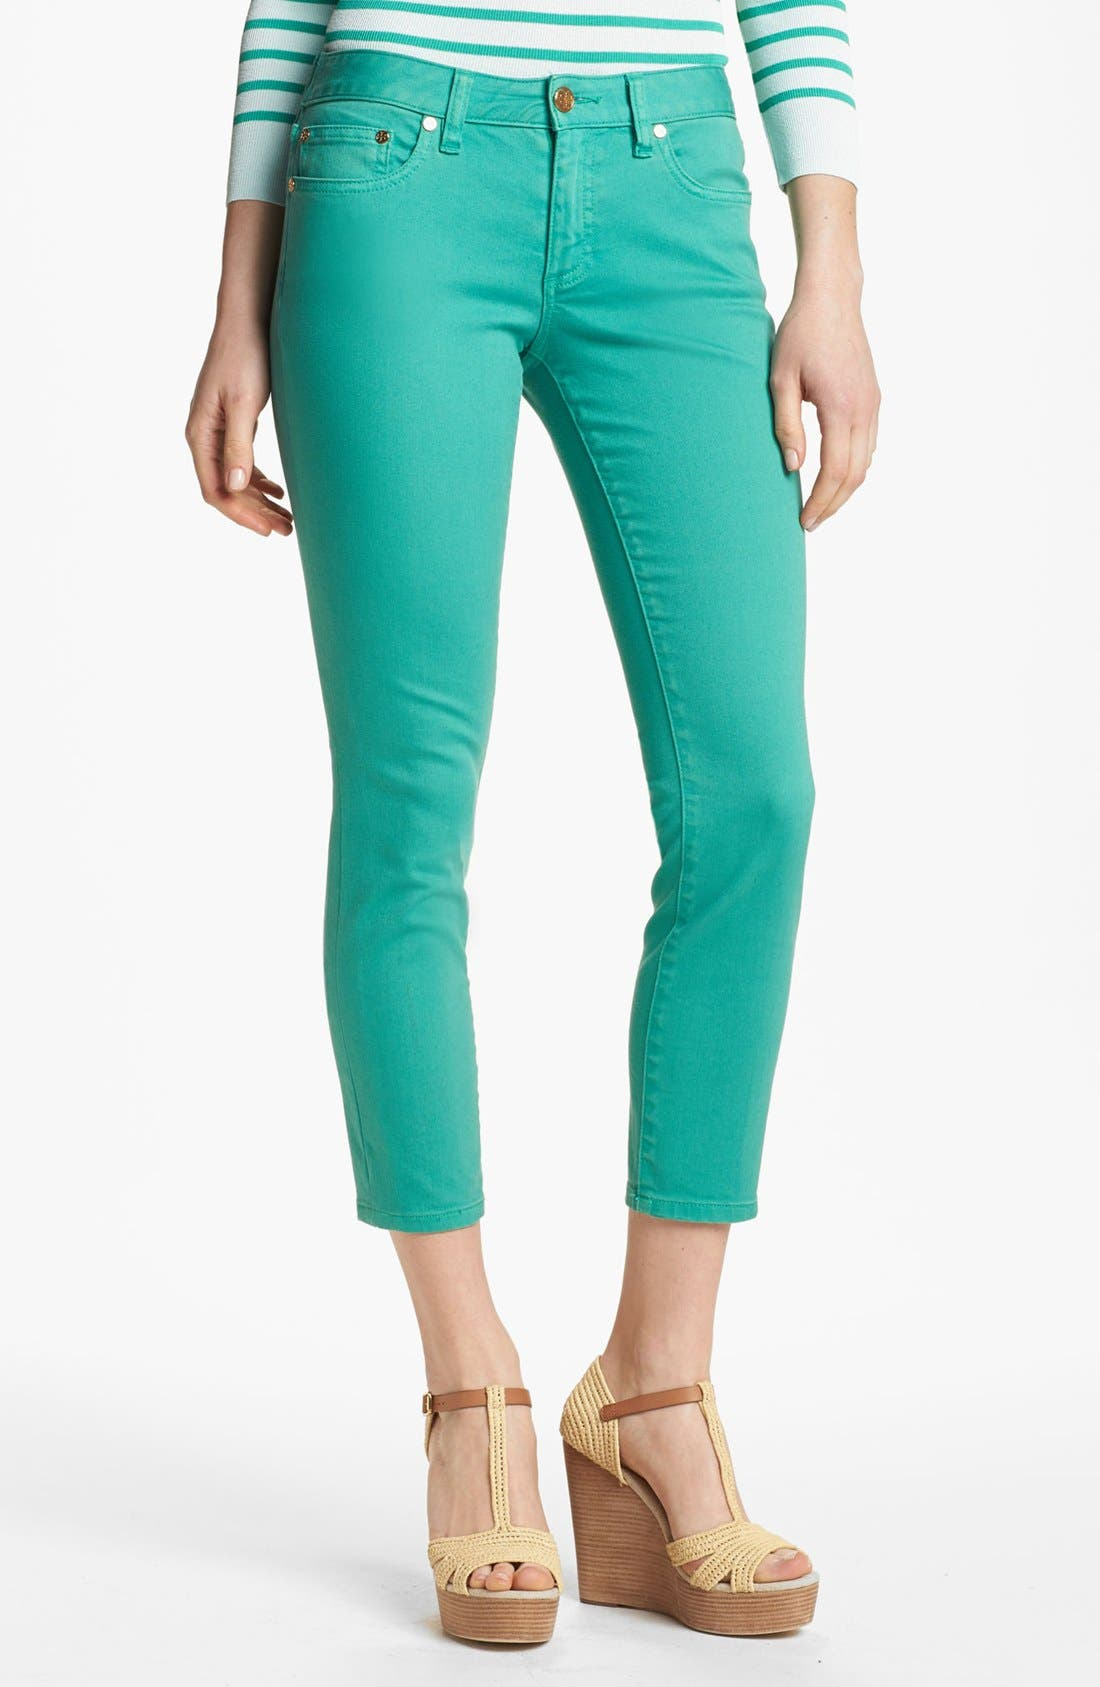 Main Image - Tory Burch 'Alexa' Skinny Crop Stretch Jeans (Viridian Green)